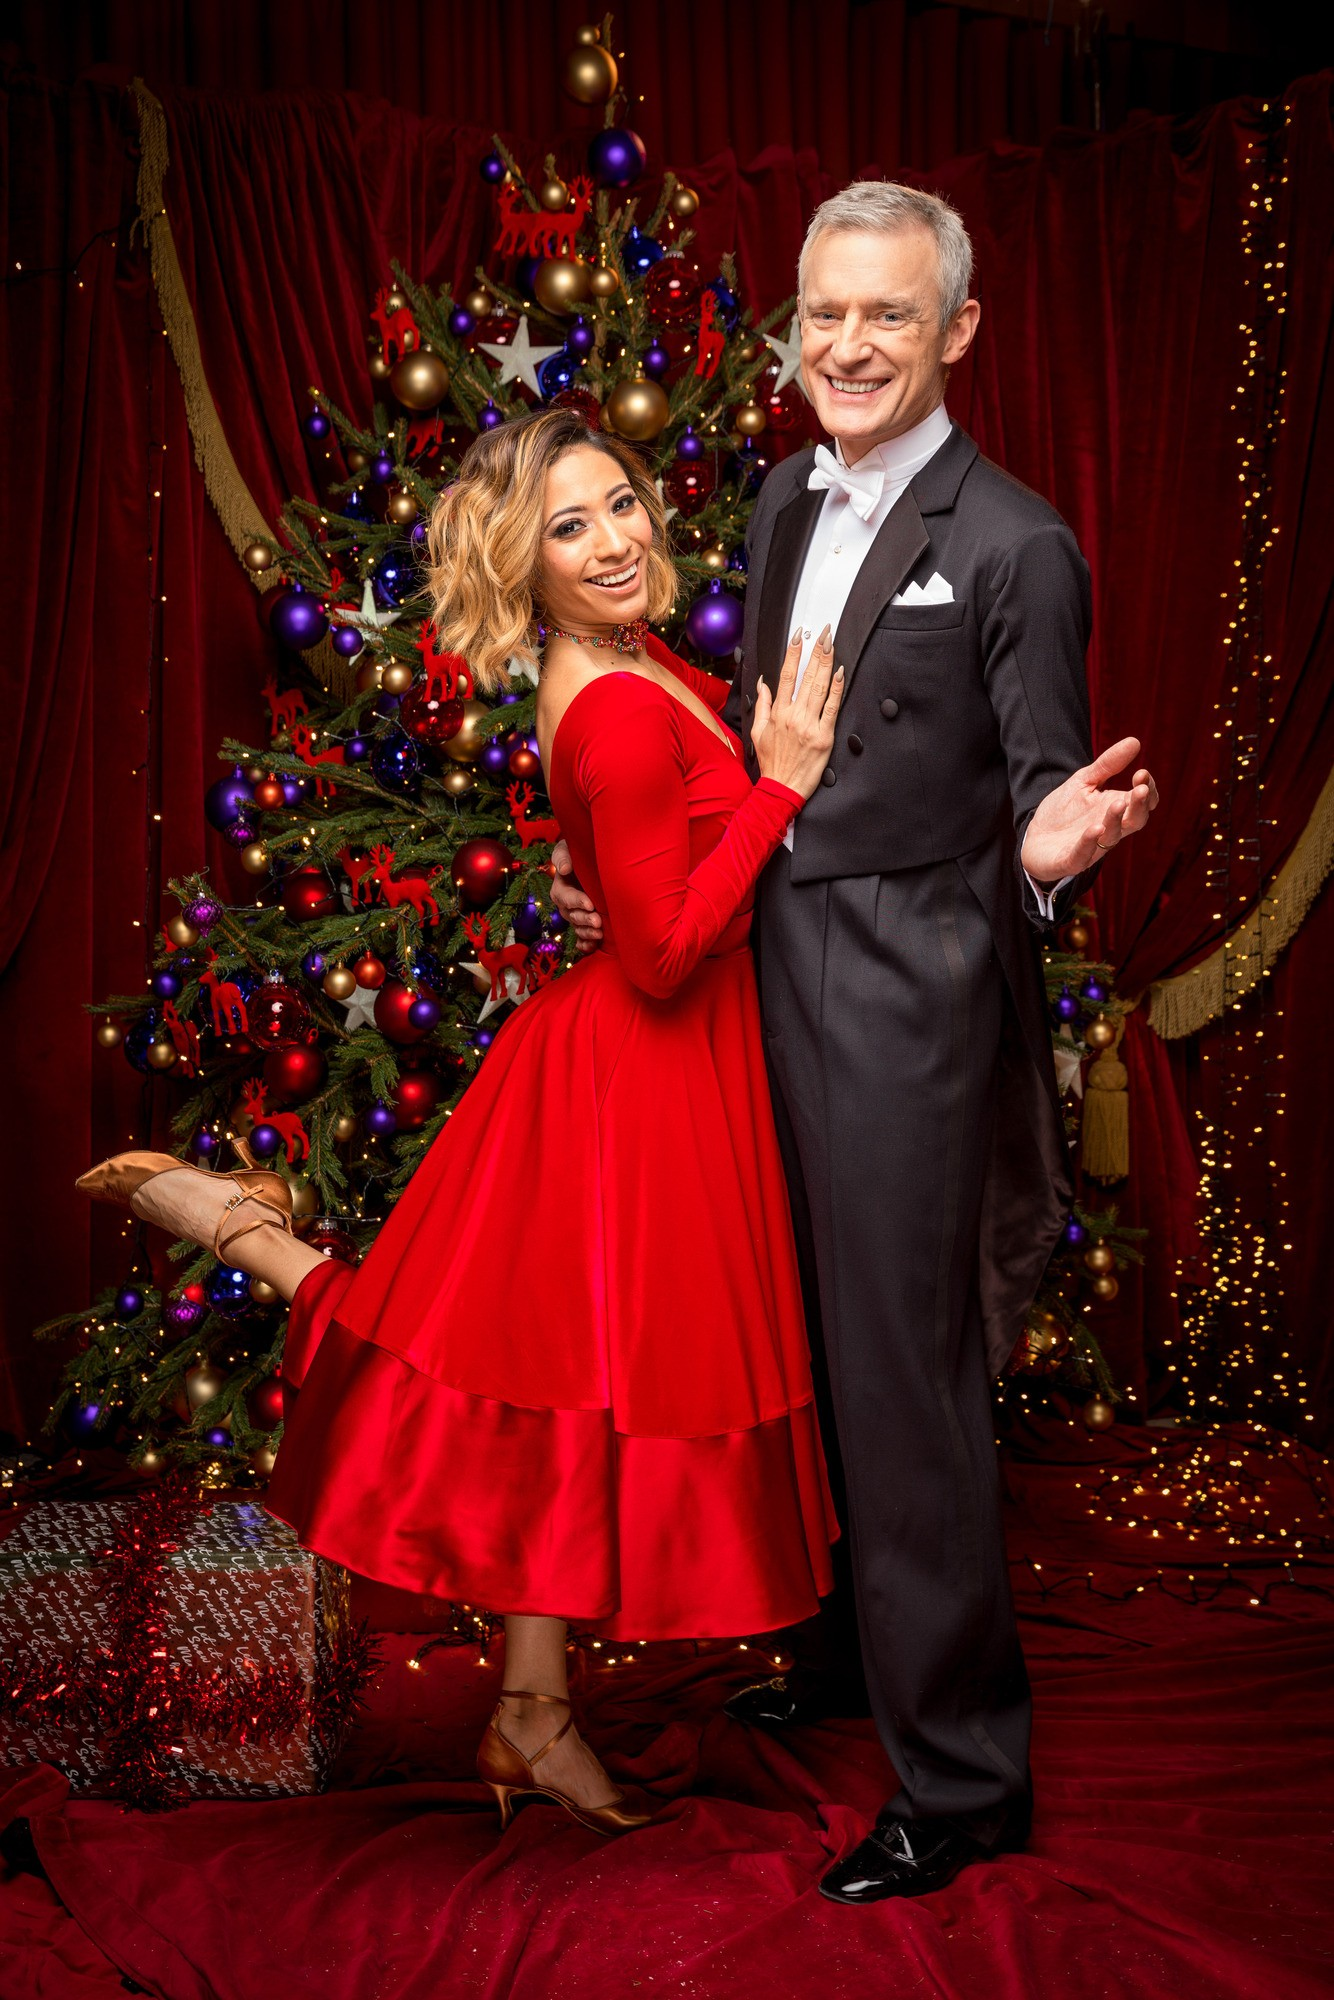 WARNING: Embargoed for publication until 00:00:01 on 09/12/2017 - Programme Name: Strictly Come Dancing Christmas Special 2017 - TX: n/a - Episode: Strictly Come Dancing Christmas Special 2017 (No. n/a) - Picture Shows: **EMBARGOED FOR PUBLICATION UNTIL 00:00 HRS ON SATURDAY 9TH DECEMBER 2017** Karen Clifton, Jeremy Vine - (C) BBC - Photographer: Guy Levy (BBC, TL)